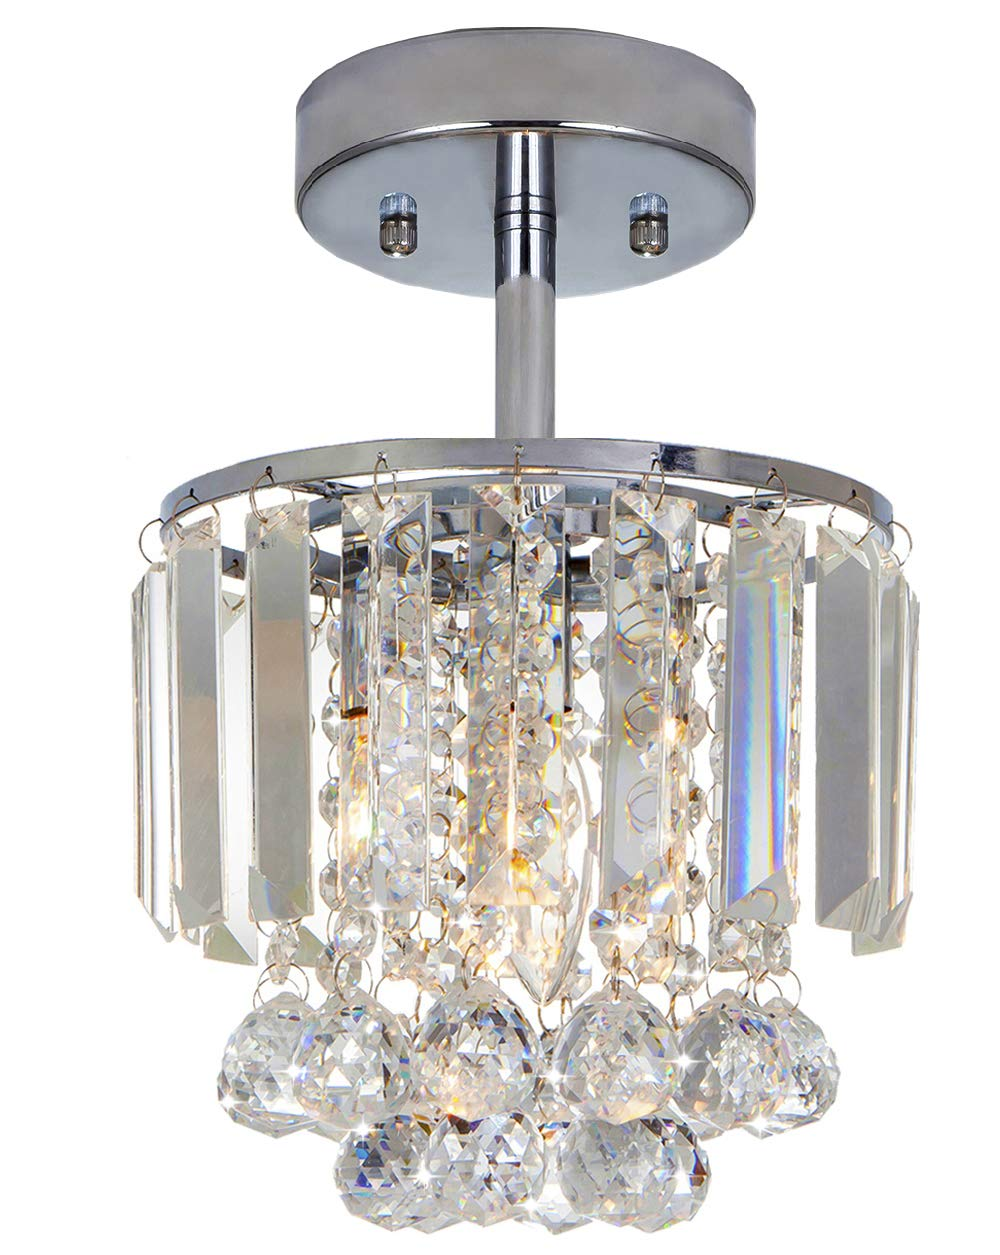 Delica Home Modern 7.87'' Diameter Crystal Ceiling Light, Mini Ceiling Light for Foyers Closets Small Rooms Laundry Rooms, 1-Bulb Chandelier, 12''H